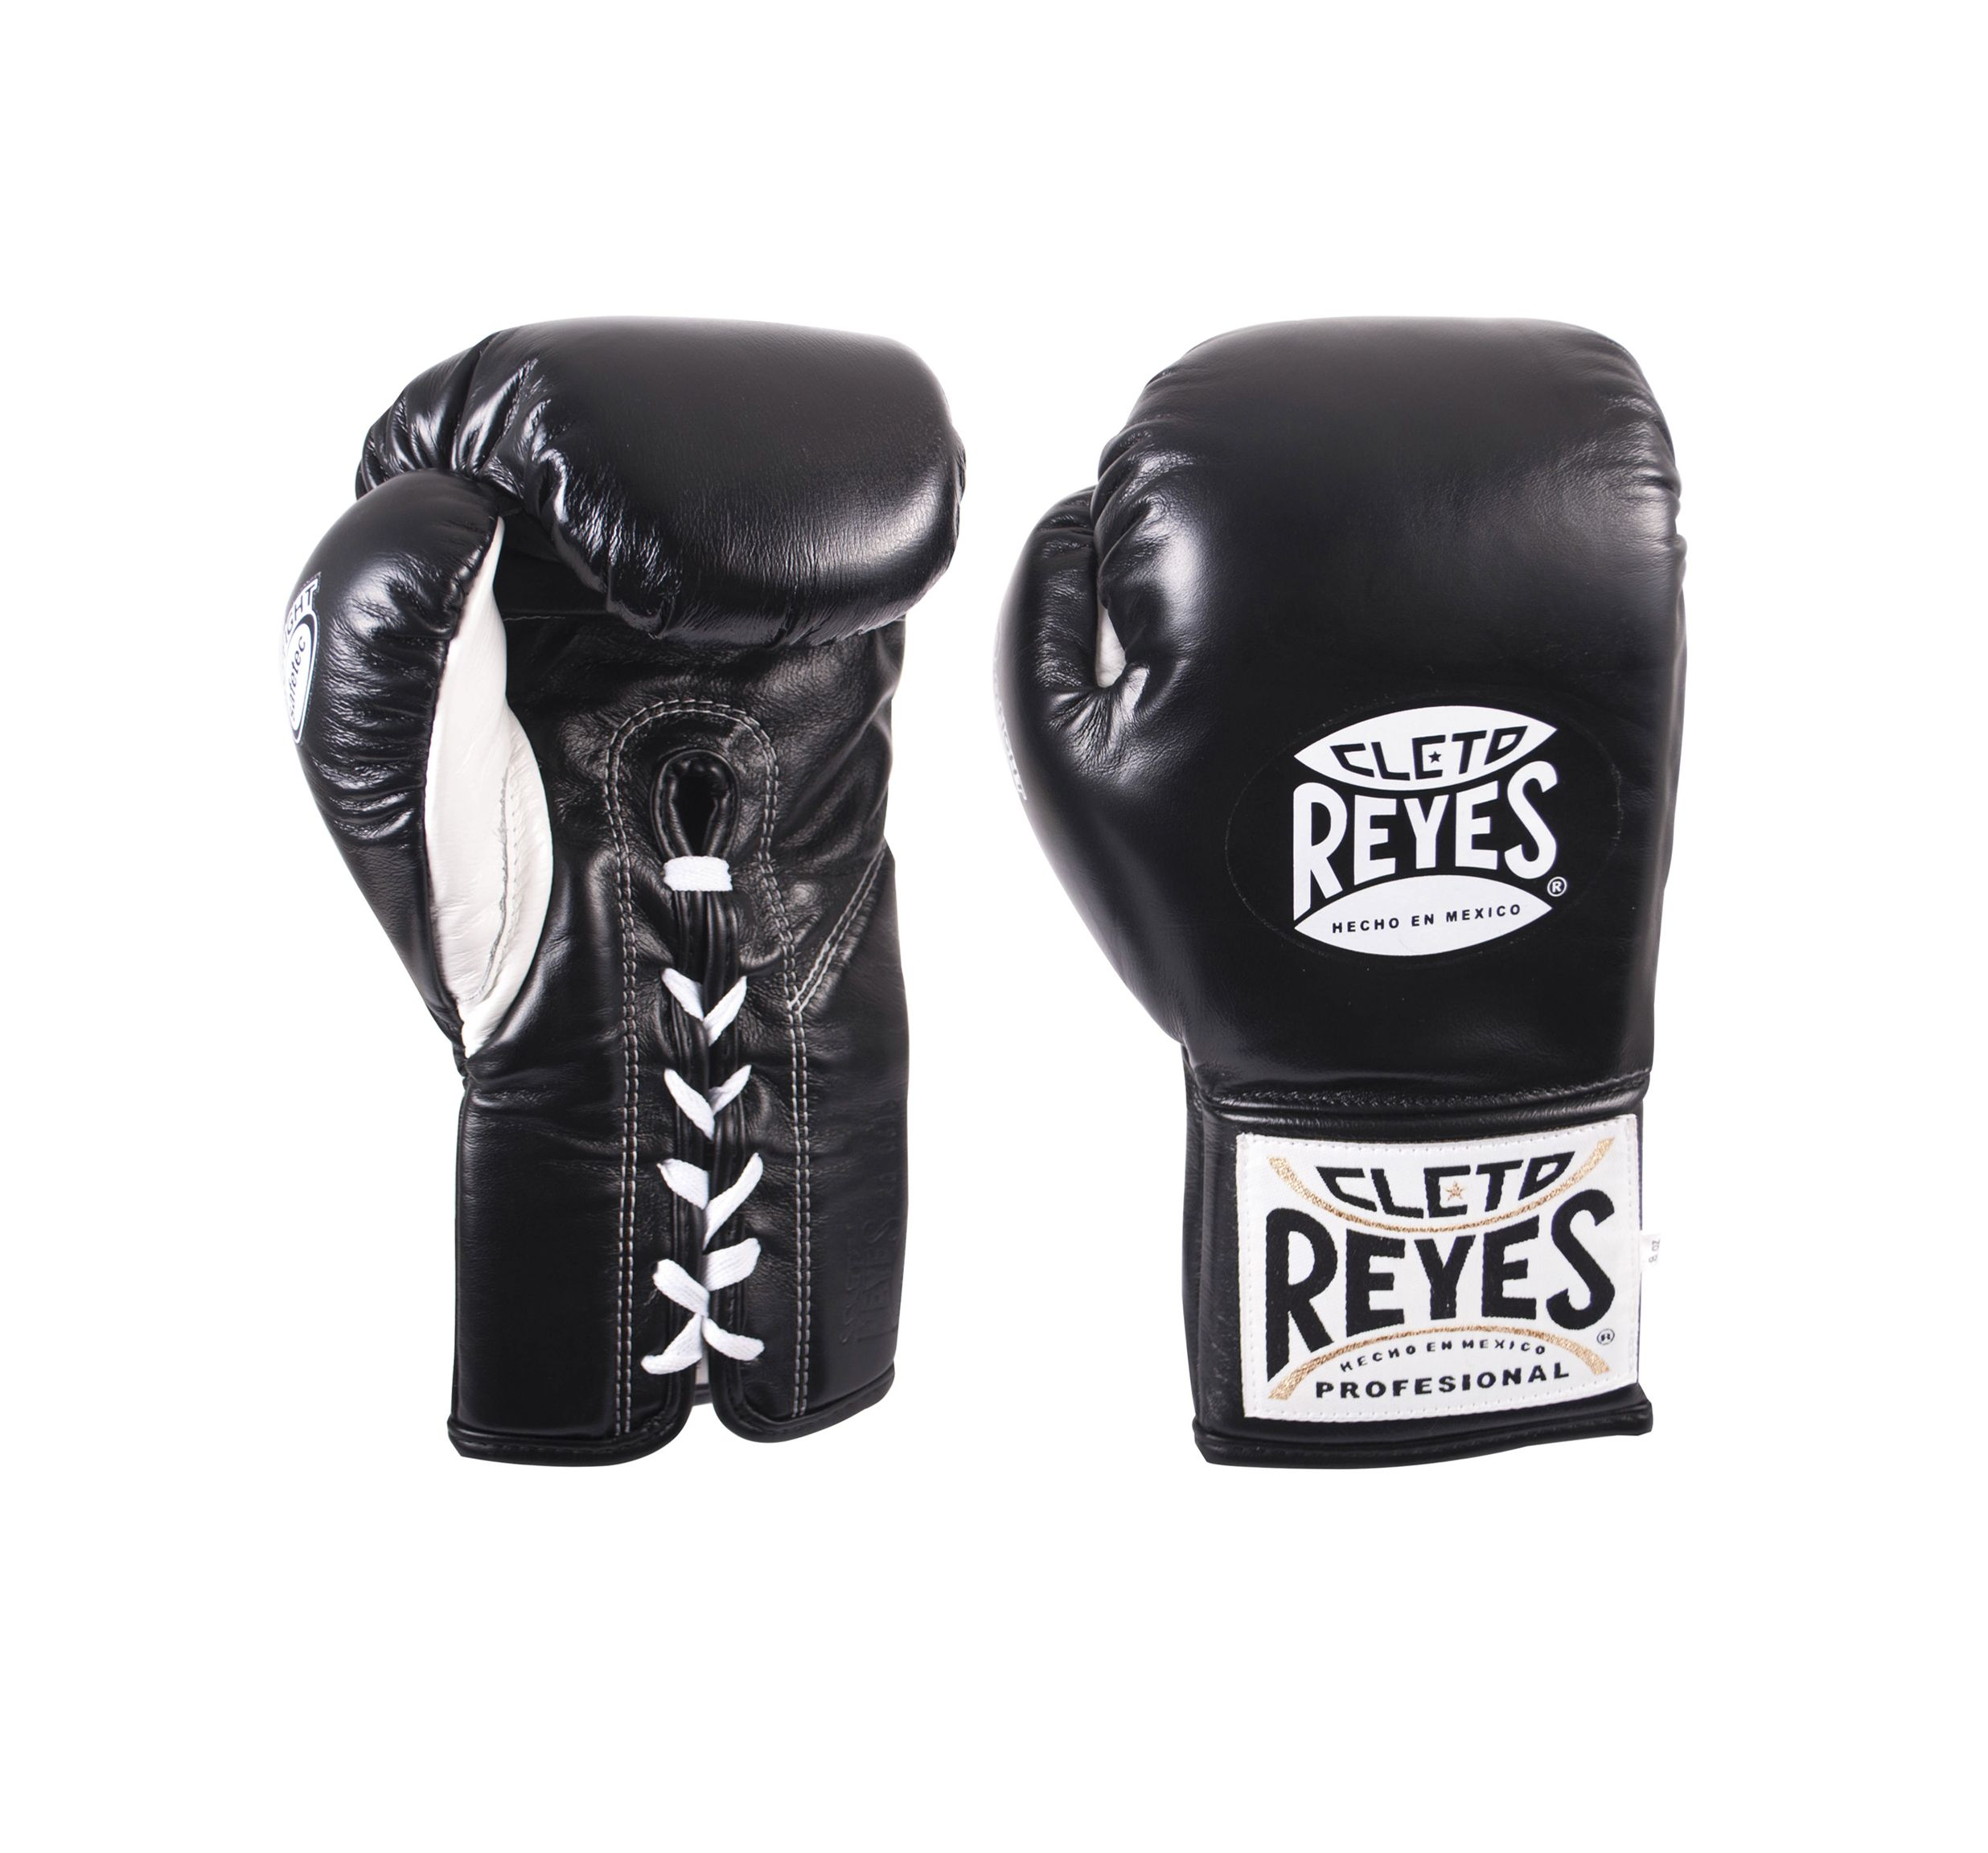 Black gloves lyrics goose - Now You Can Wear Official Fight Gloves For Training Cleto Reyes Official